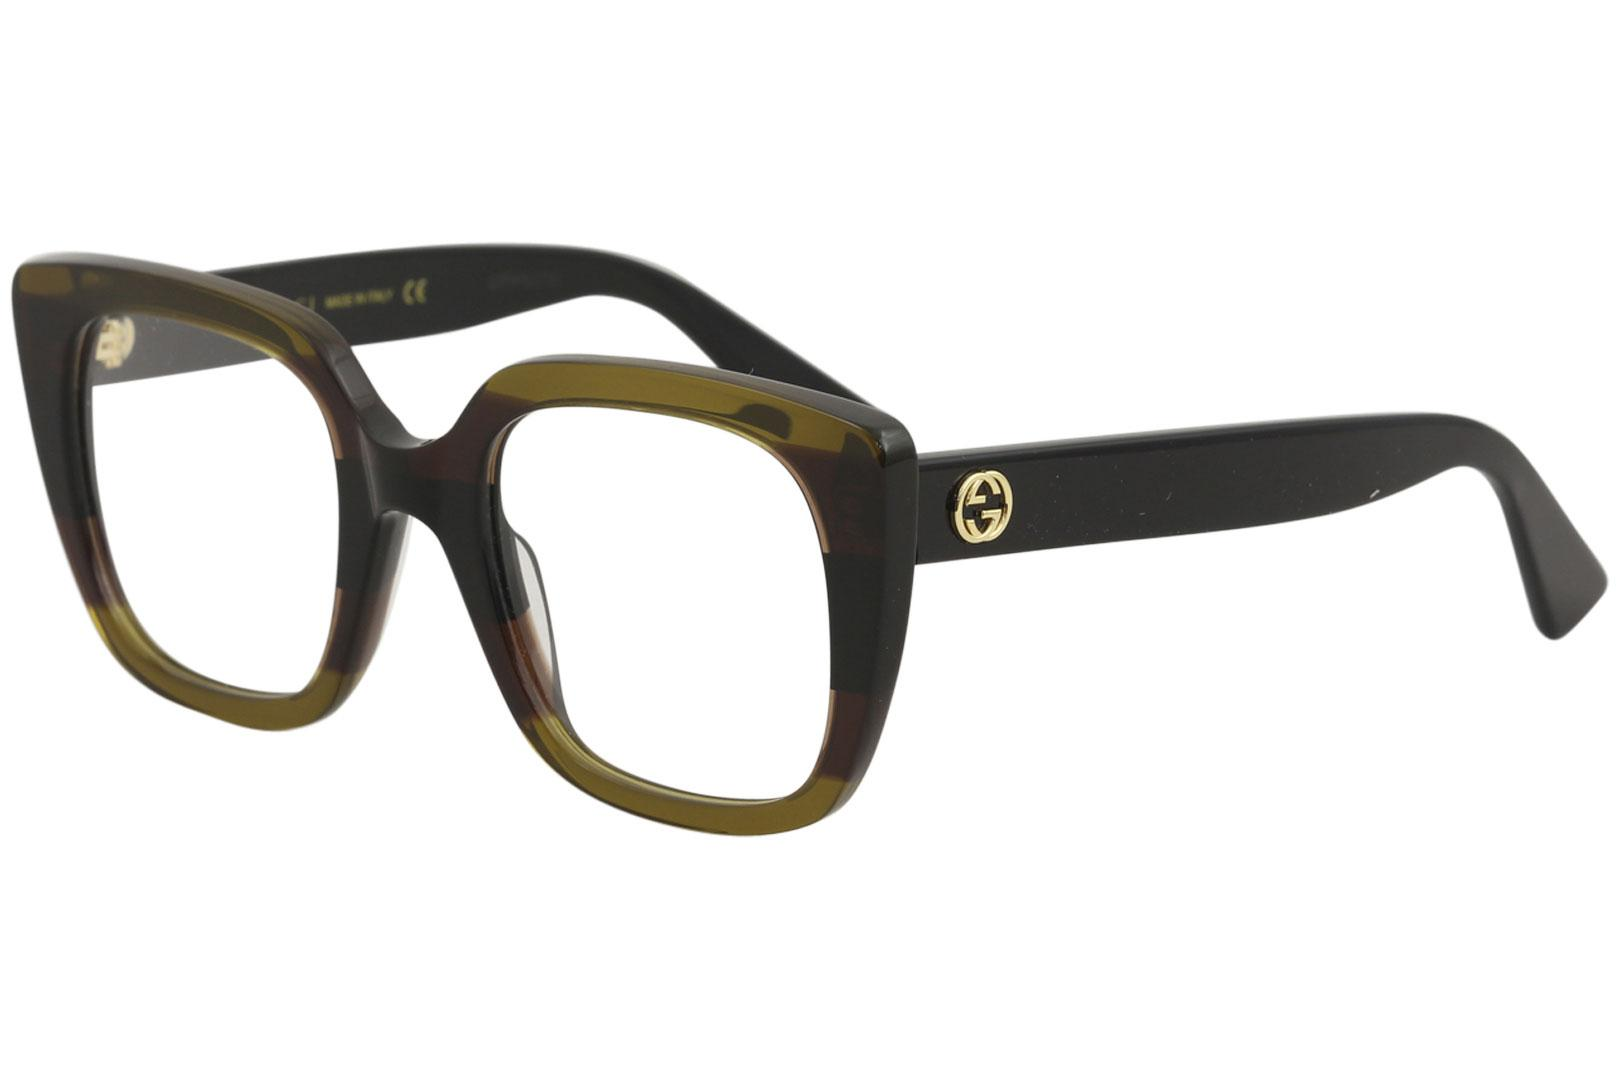 cb6375aecae Gucci Women s Eyeglasses GG0180O GG 0180 O Full Rim Optical Frame by Gucci